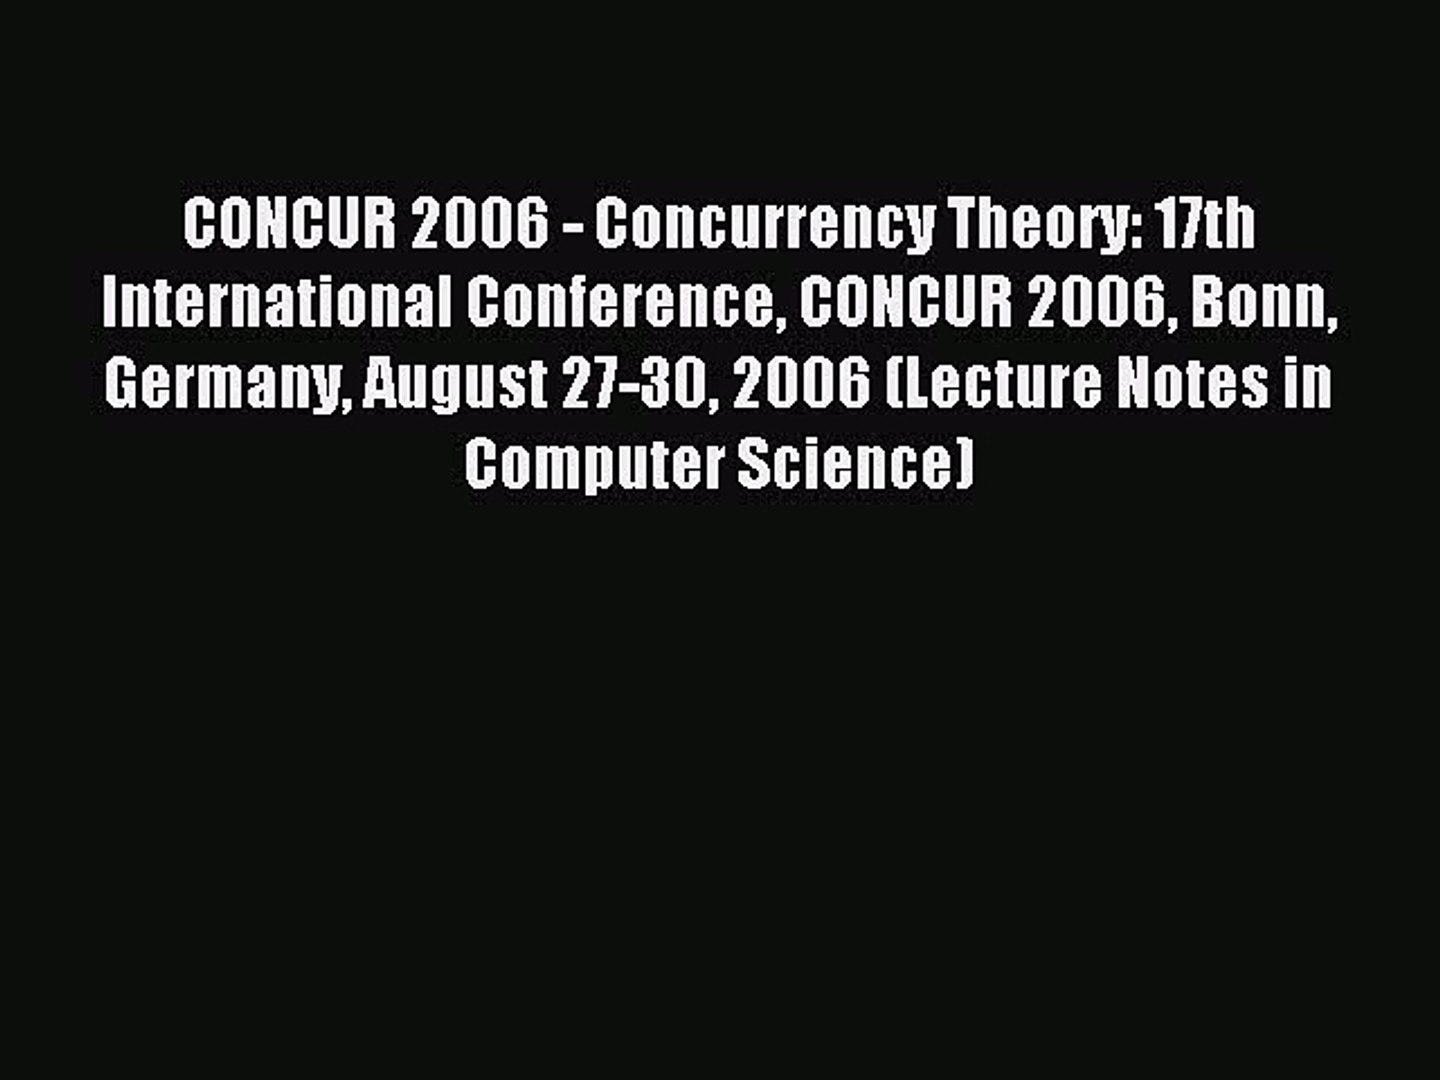 Read CONCUR 2006 - Concurrency Theory: 17th International Conference CONCUR 2006 Bonn Germany